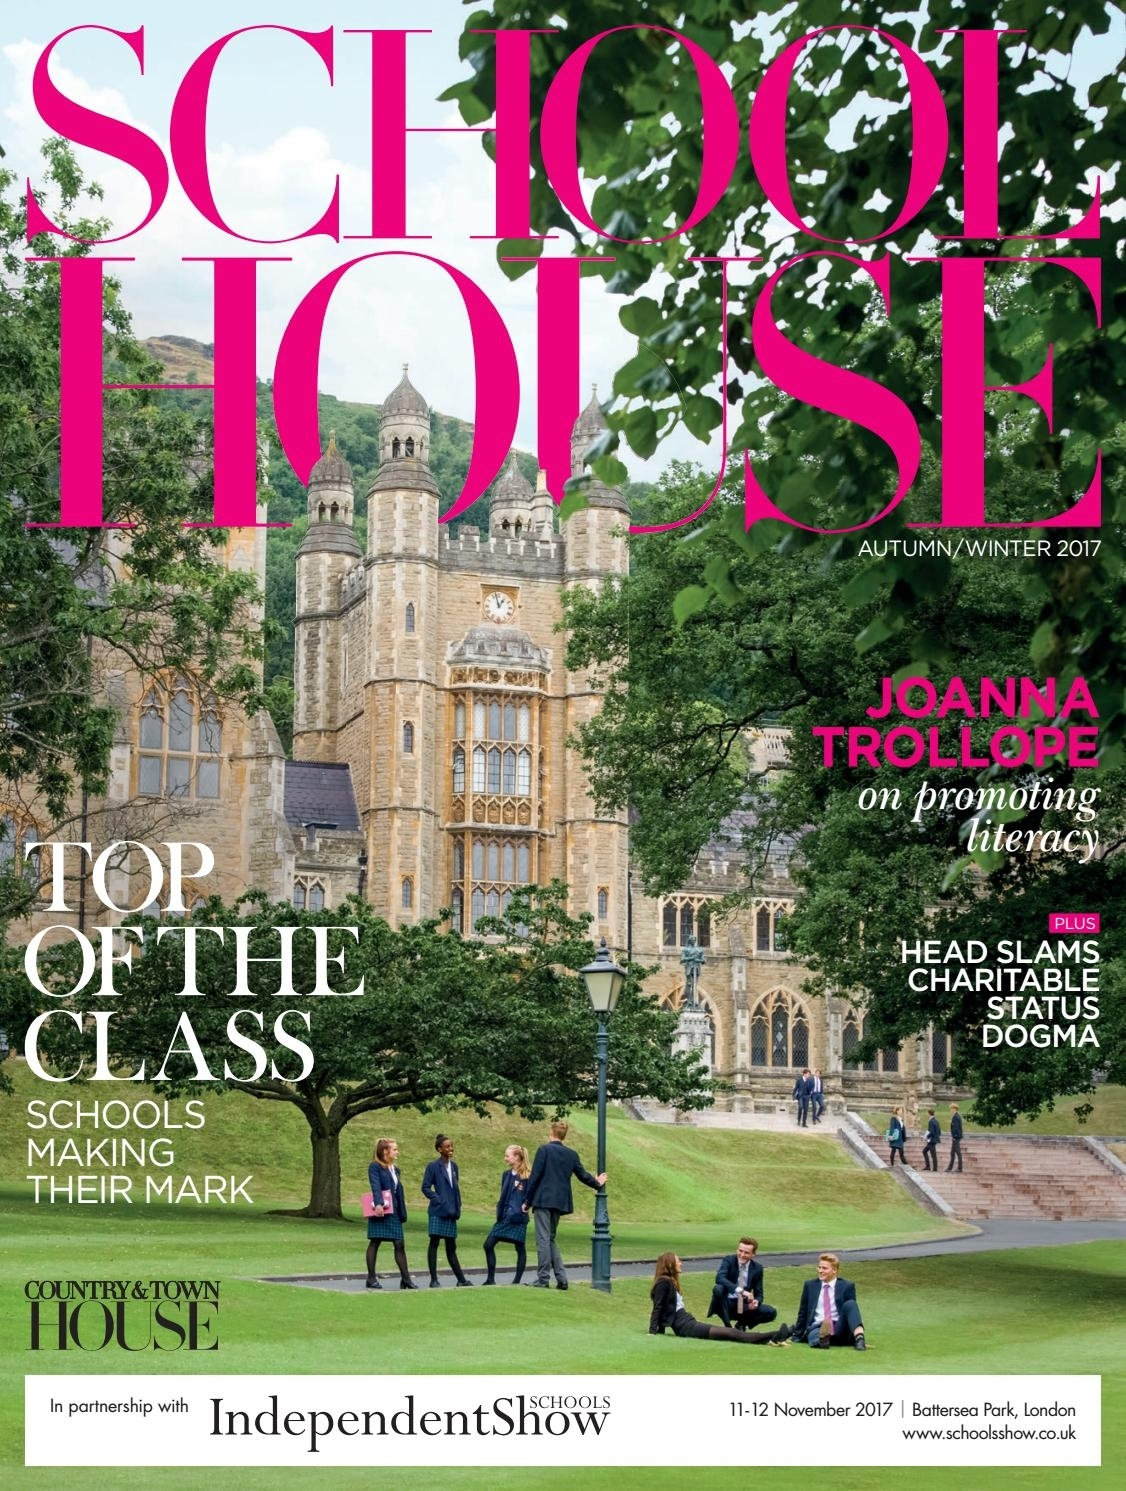 School House - Autumn/winter 2017 By Country & Town House Magazine within Christian Warland Garden House School